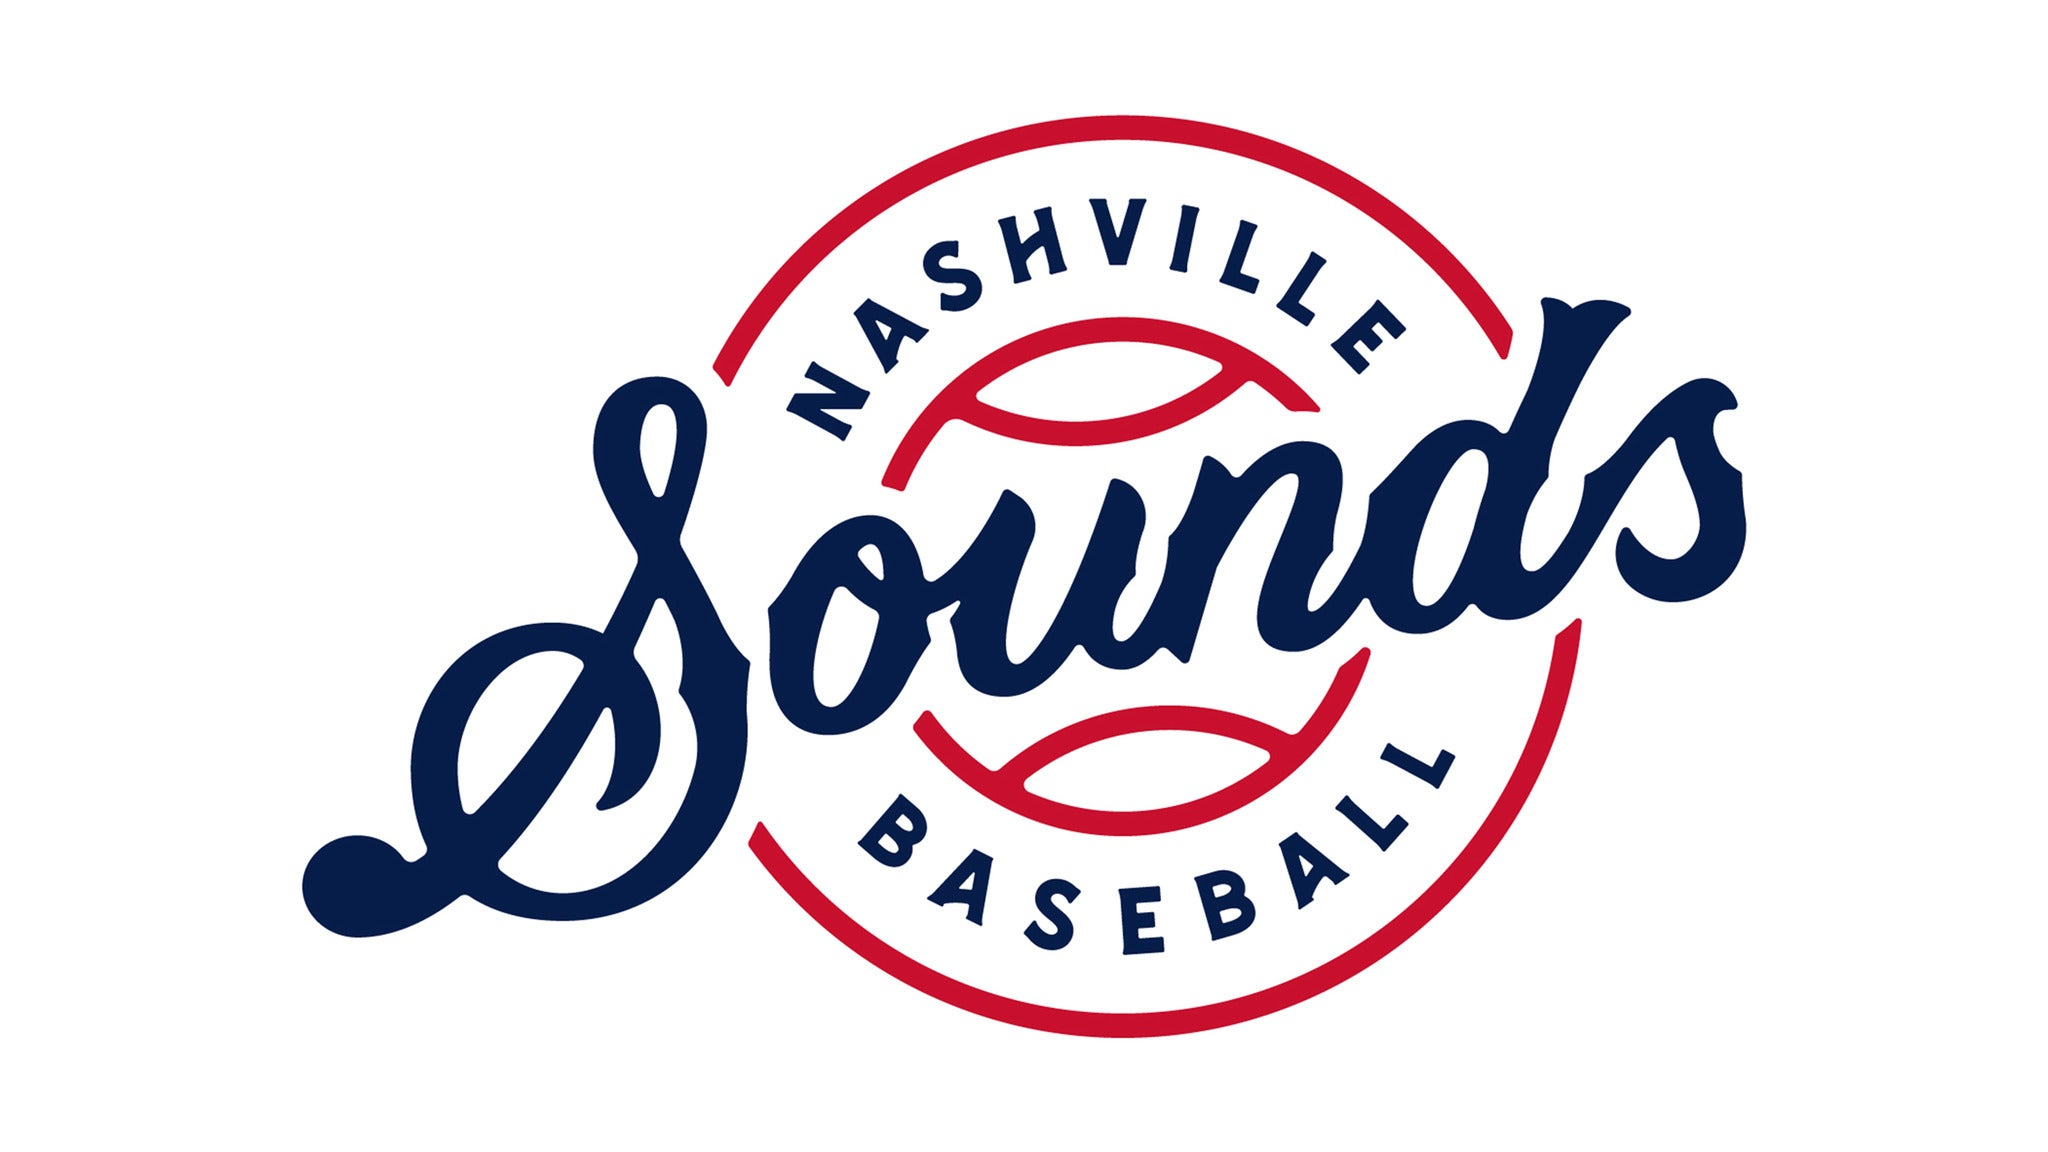 Nashville Sounds vs. Albuquerque Isotopes